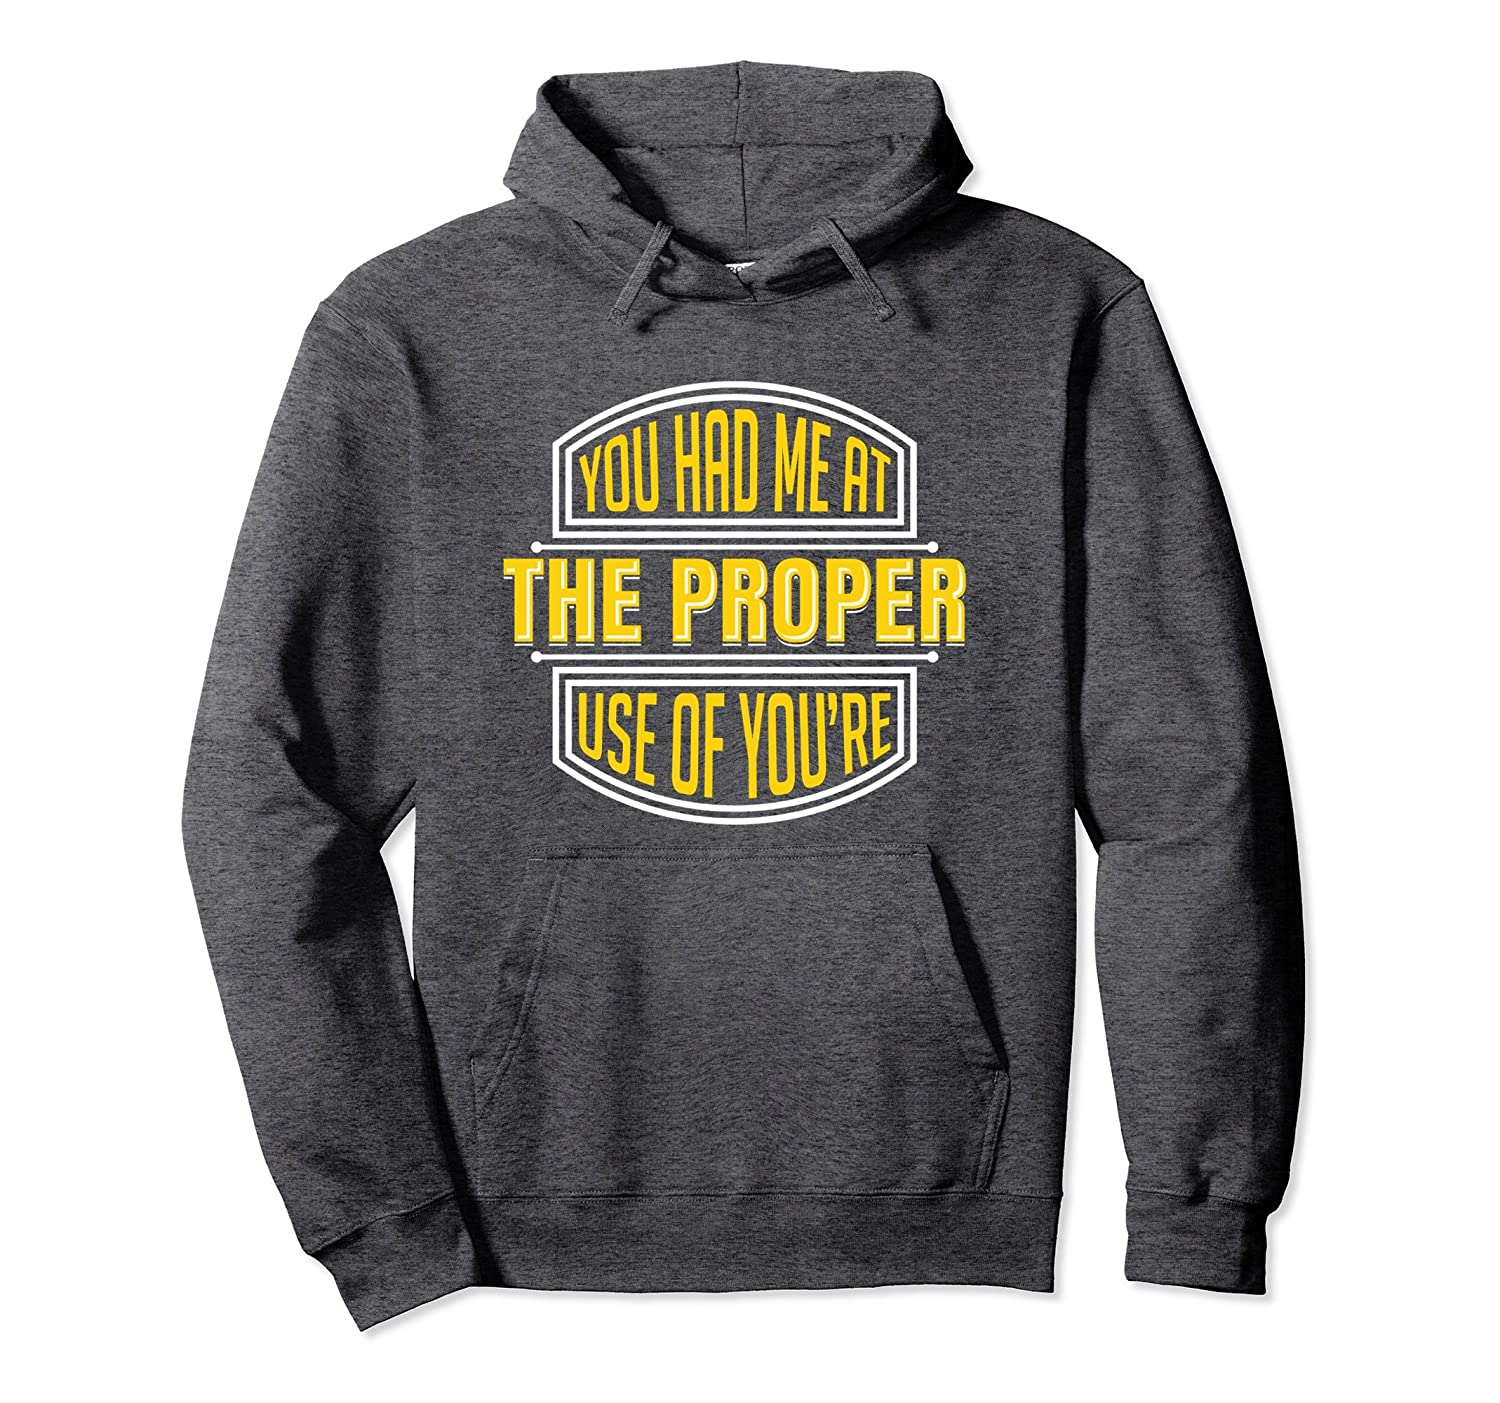 You Had Me At The Proper Use Of You're Hoodie 21669-ah my shirt one gift